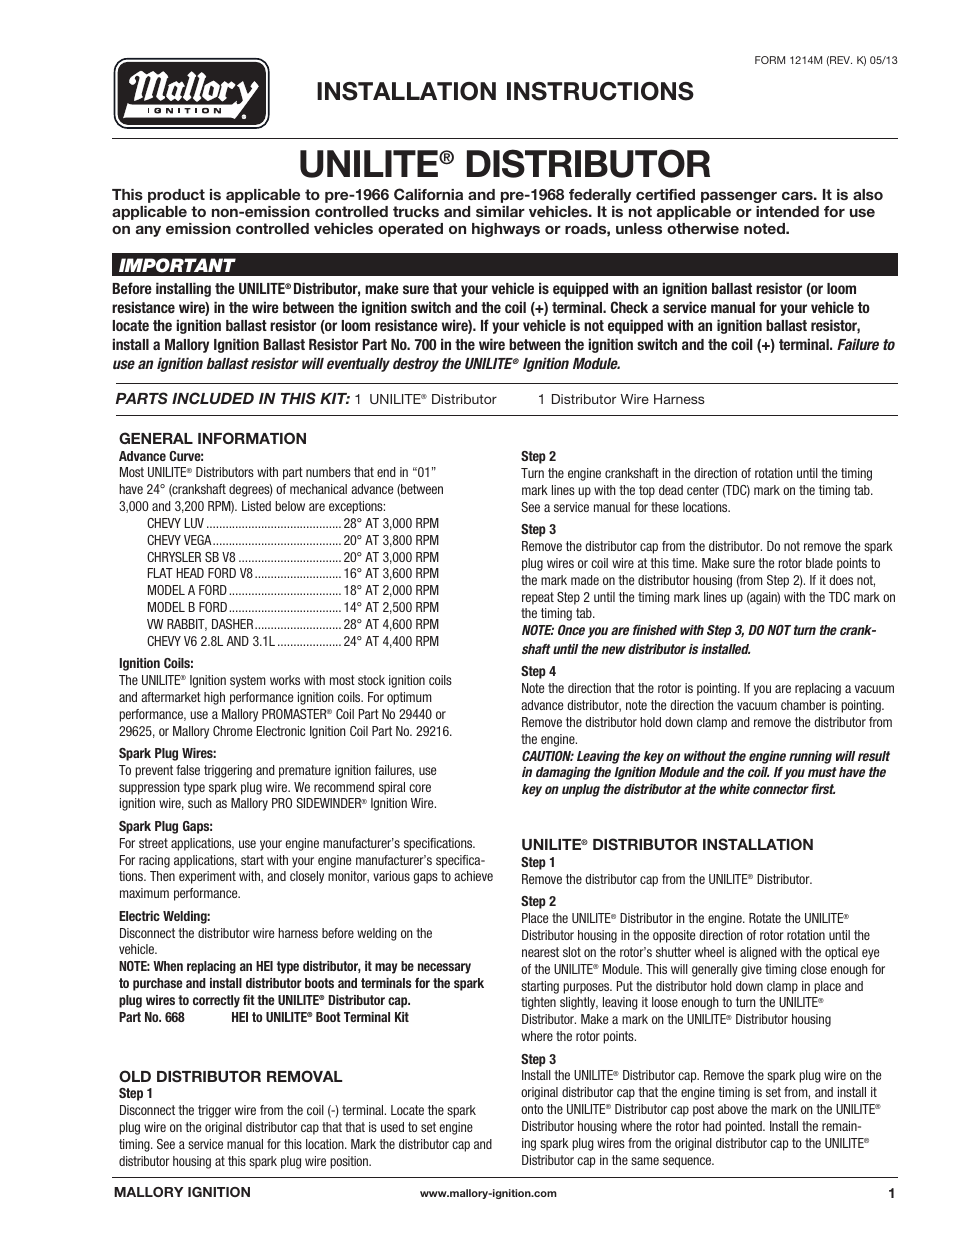 mallory ignition mallory unilite distributor 37_38_45_47 page1?resize=665%2C861 3748201 mallory ignition wiring diagrams mallory breakerless  at readyjetset.co